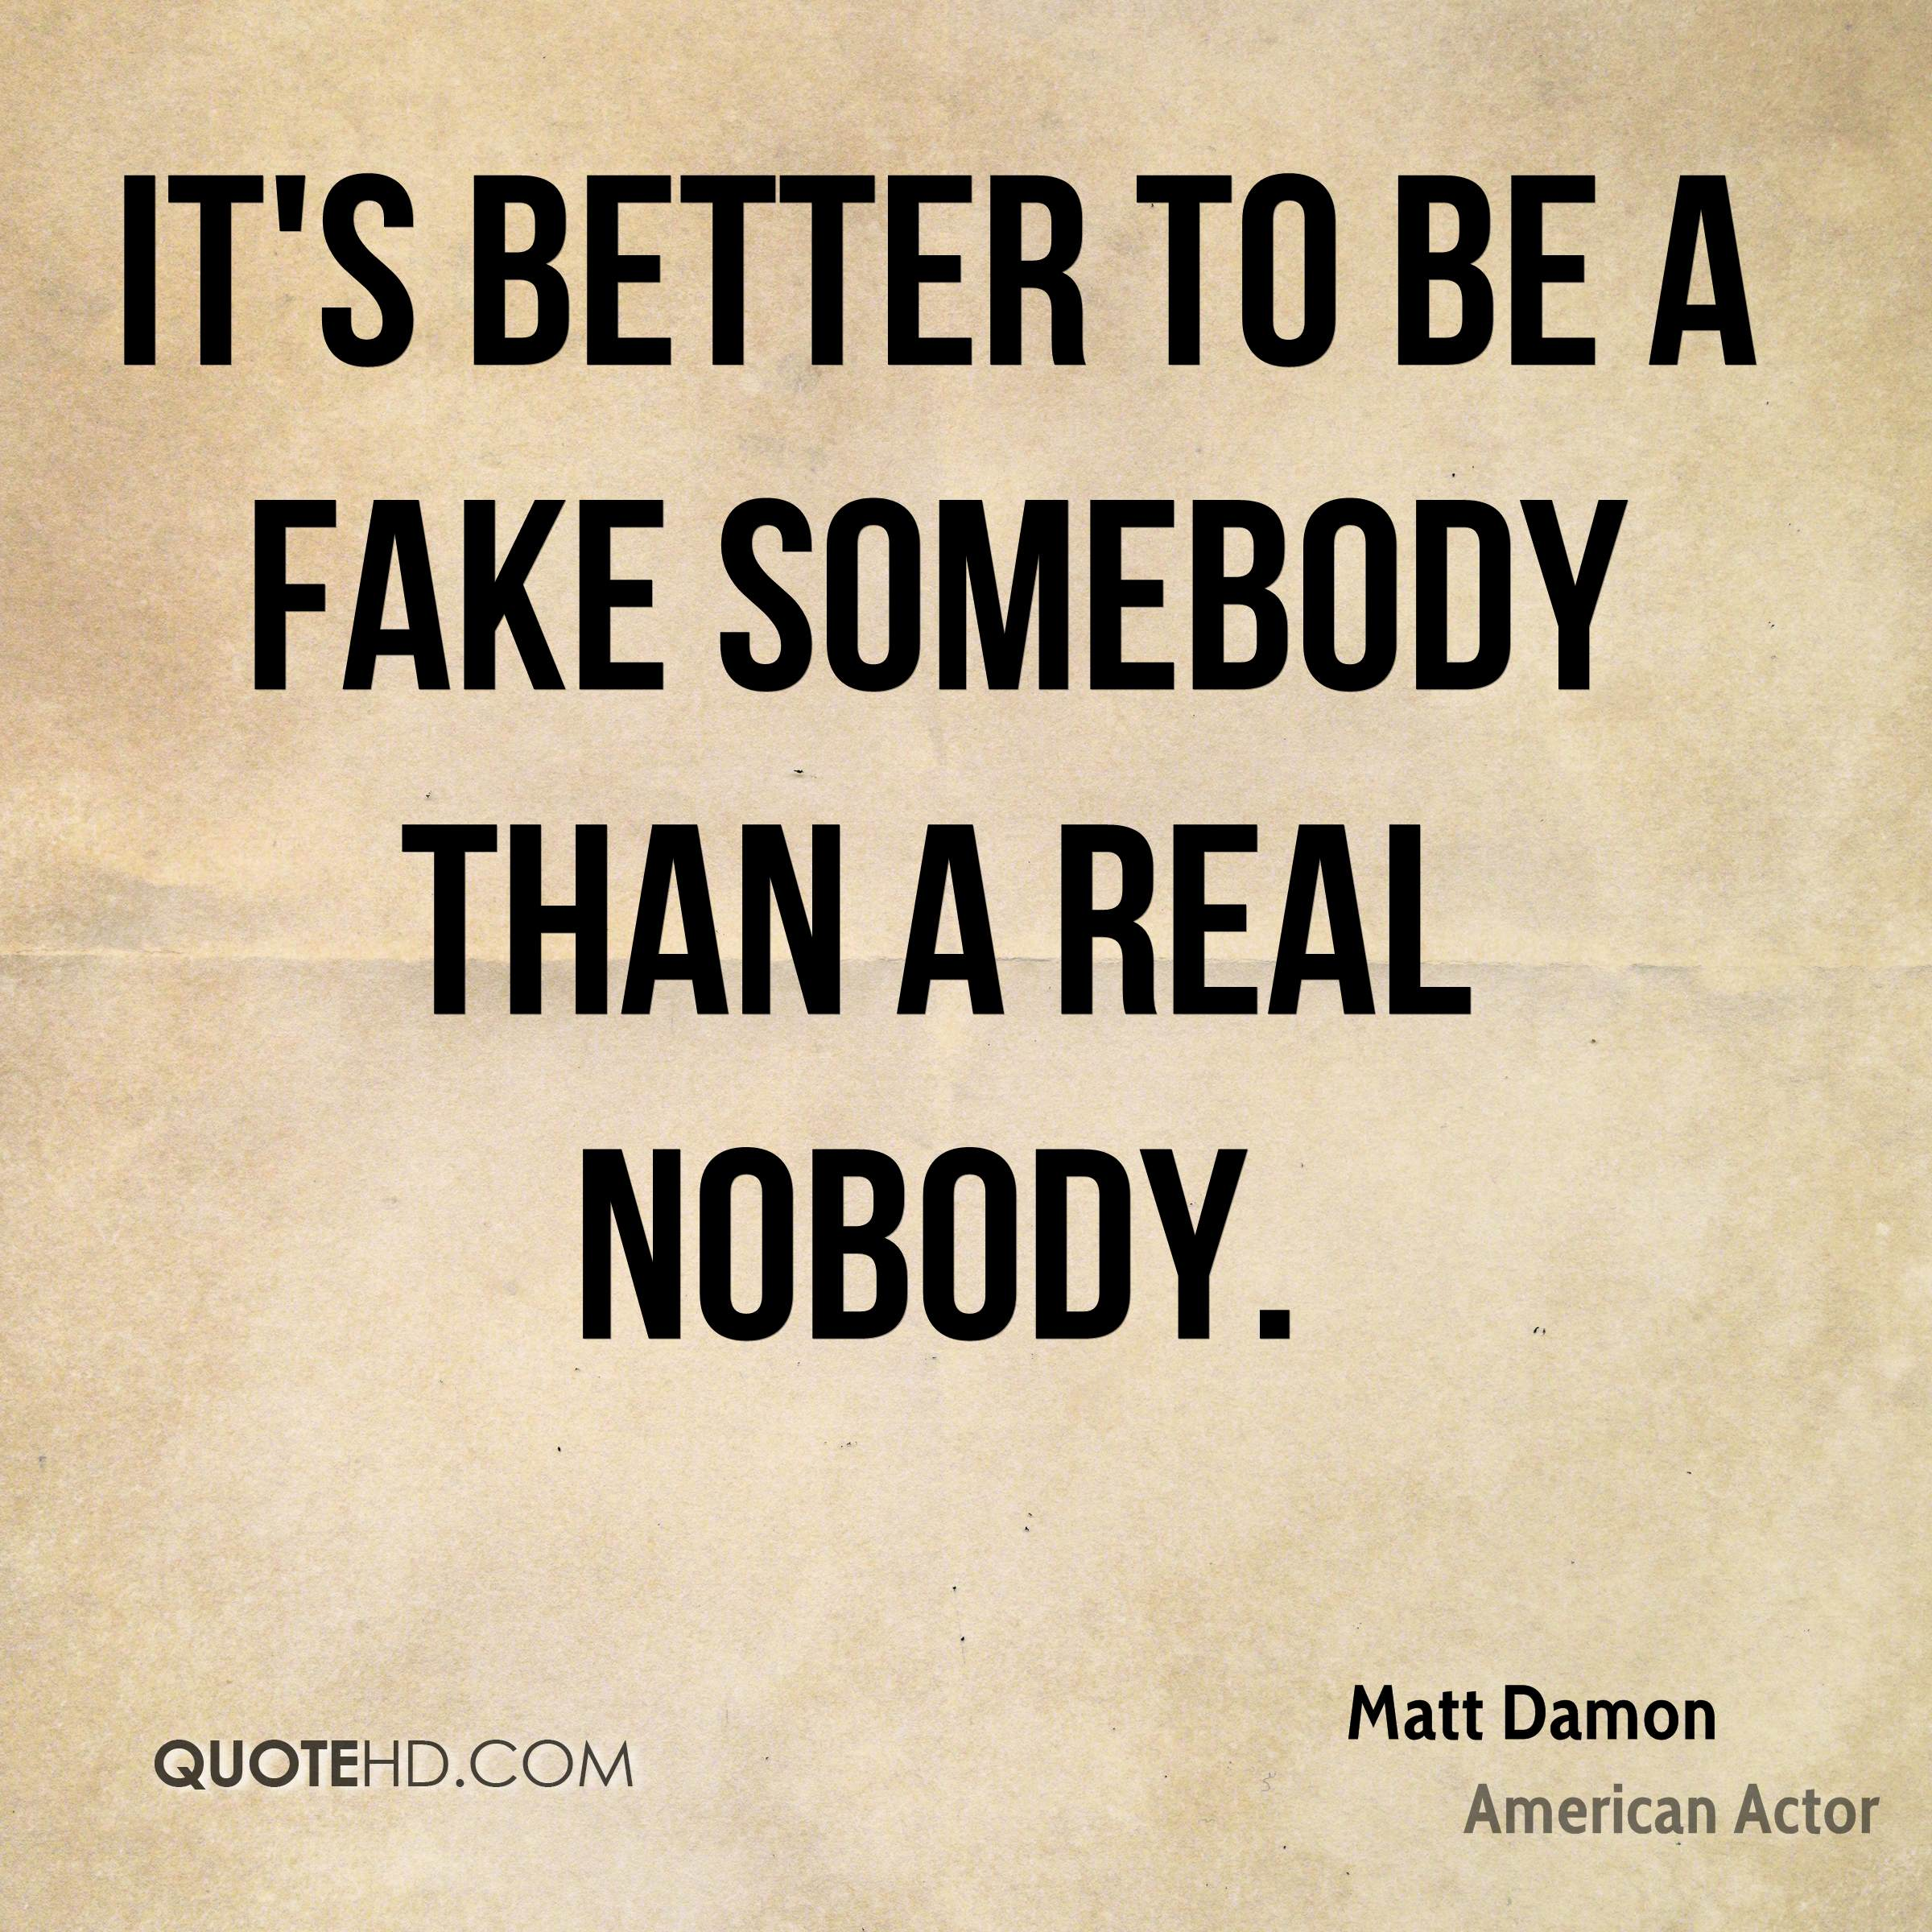 It's better to be a fake somebody than a real nobody.